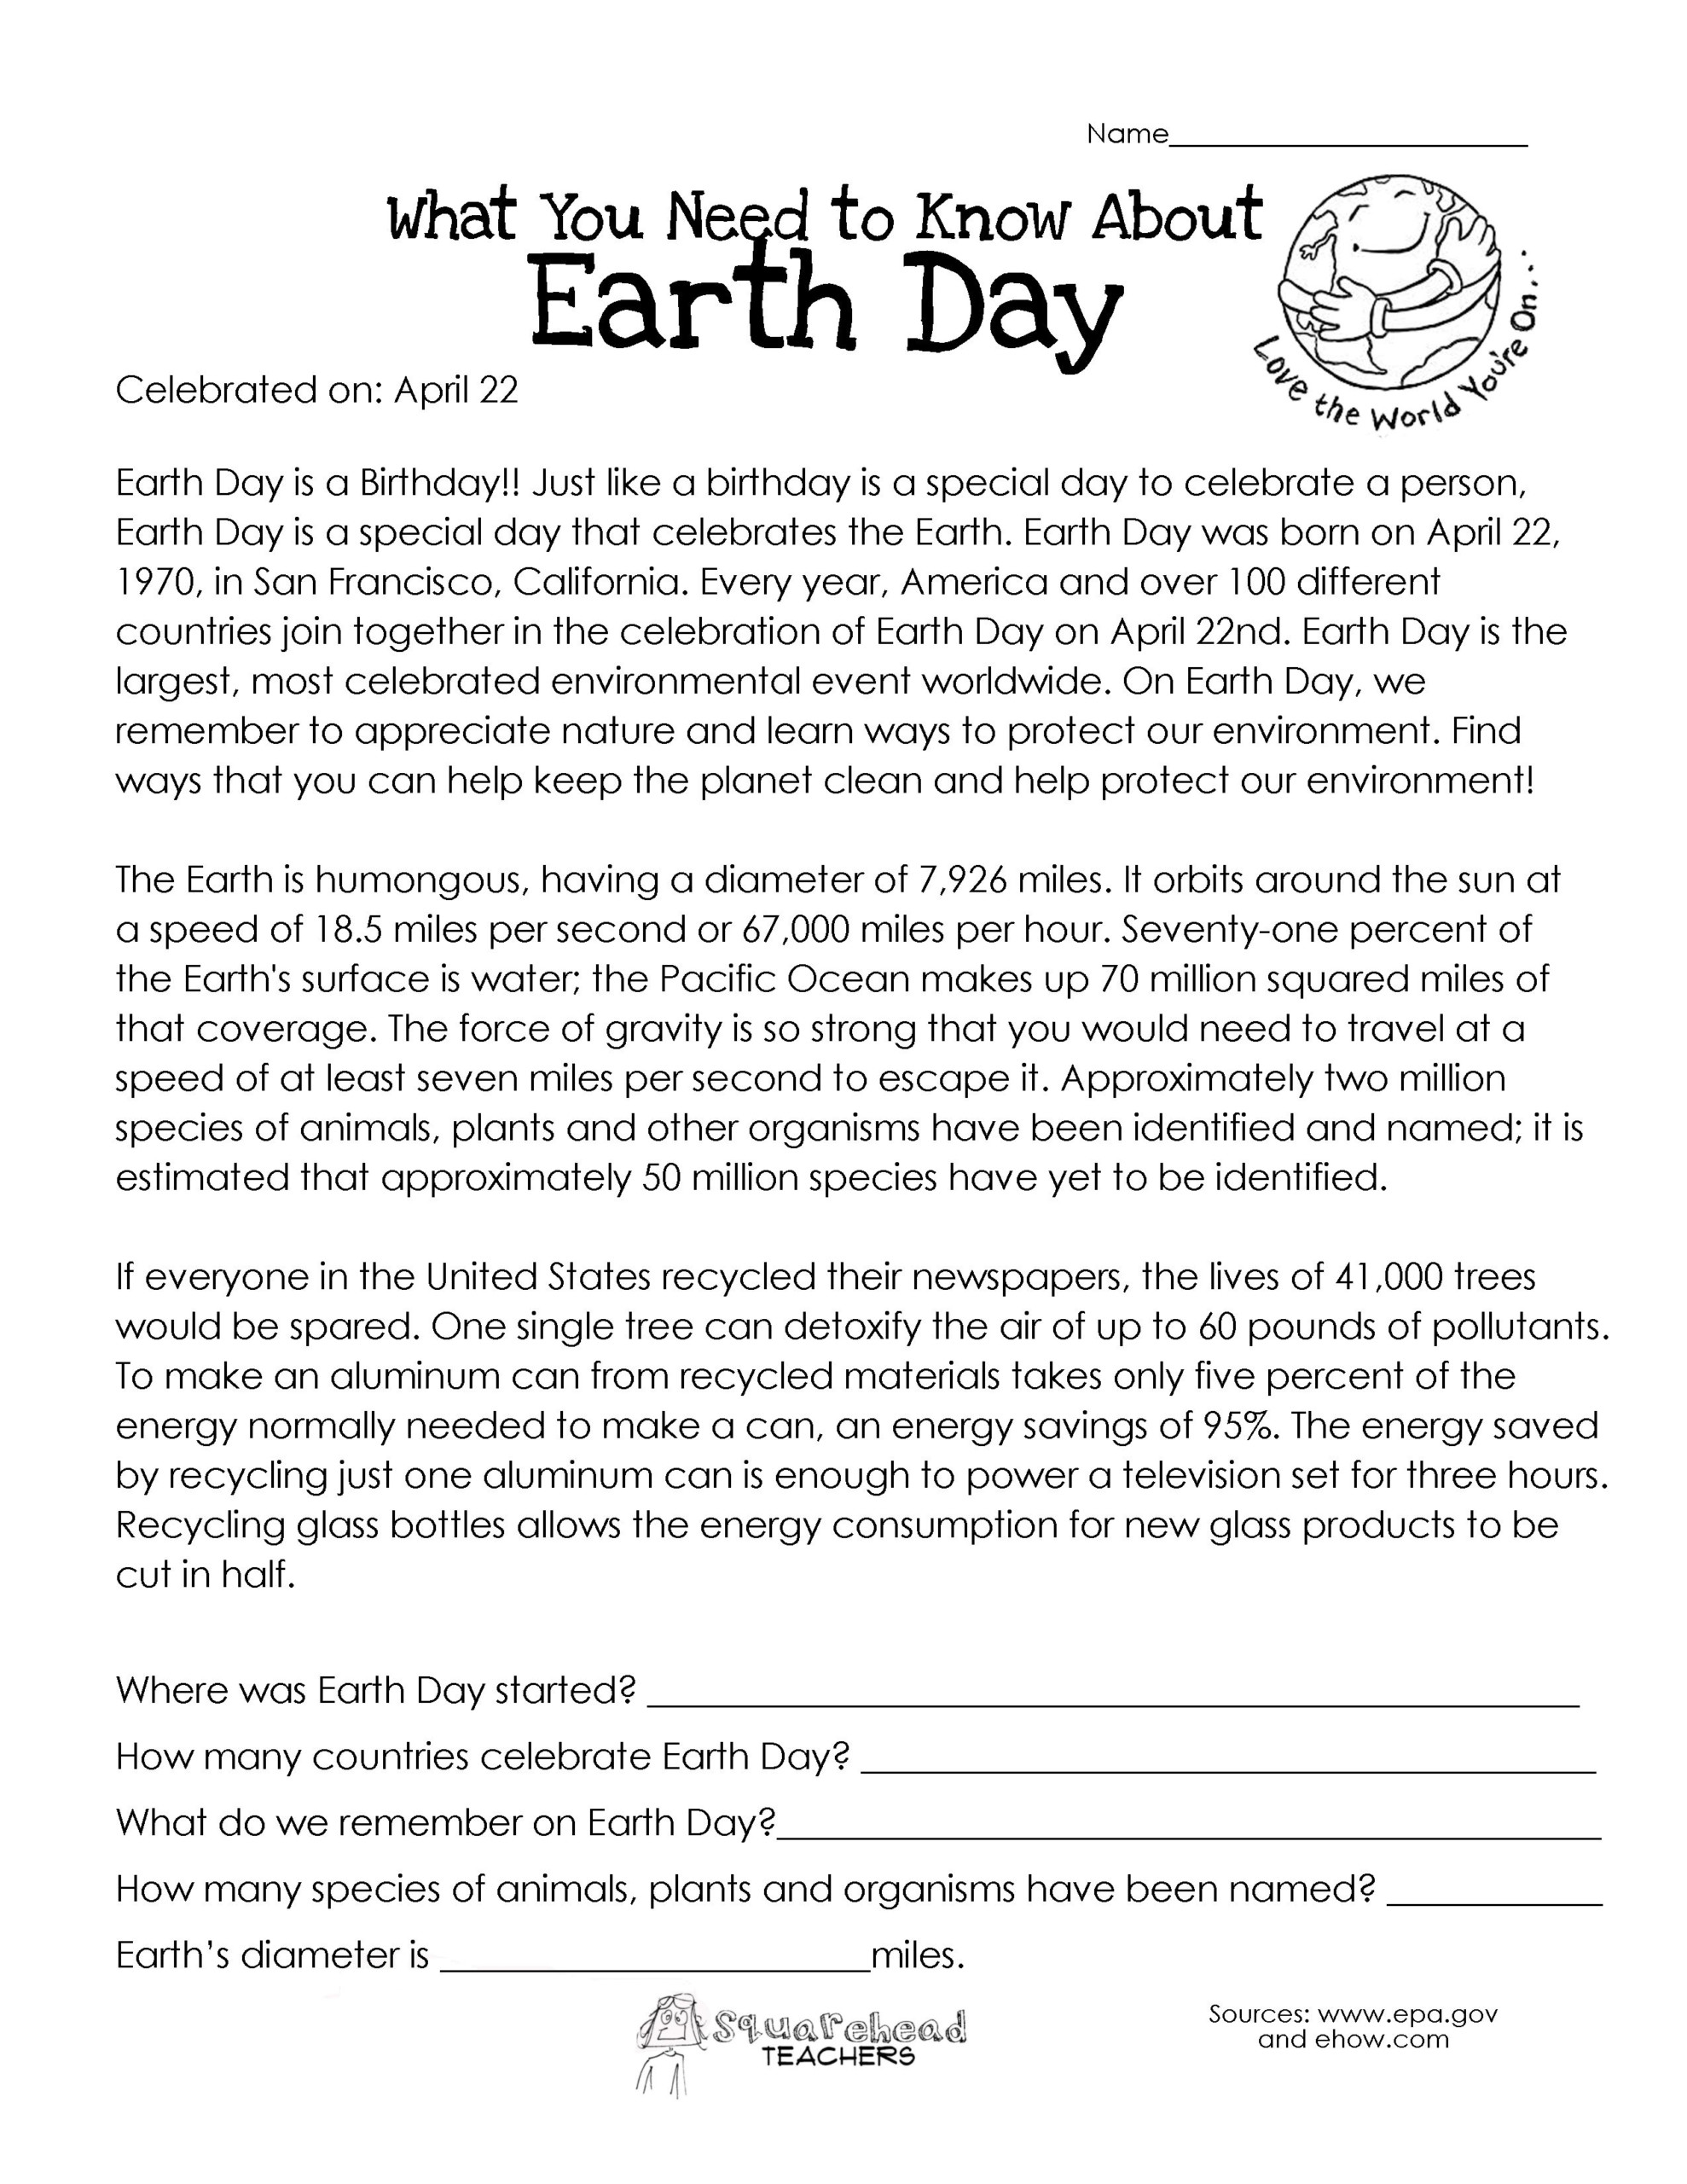 Columbus Day Reading Comprehension Worksheets Middle